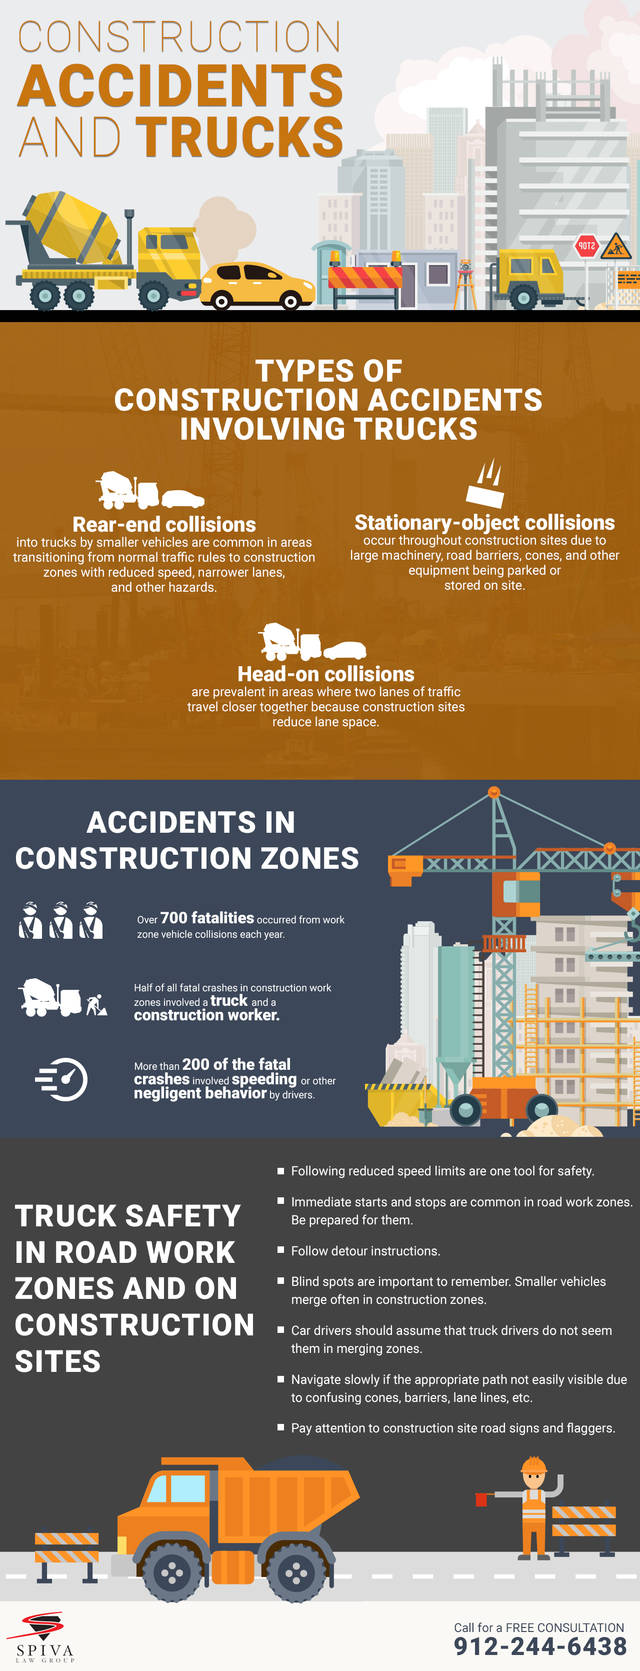 Spivalaw construction accident and trucks infographic